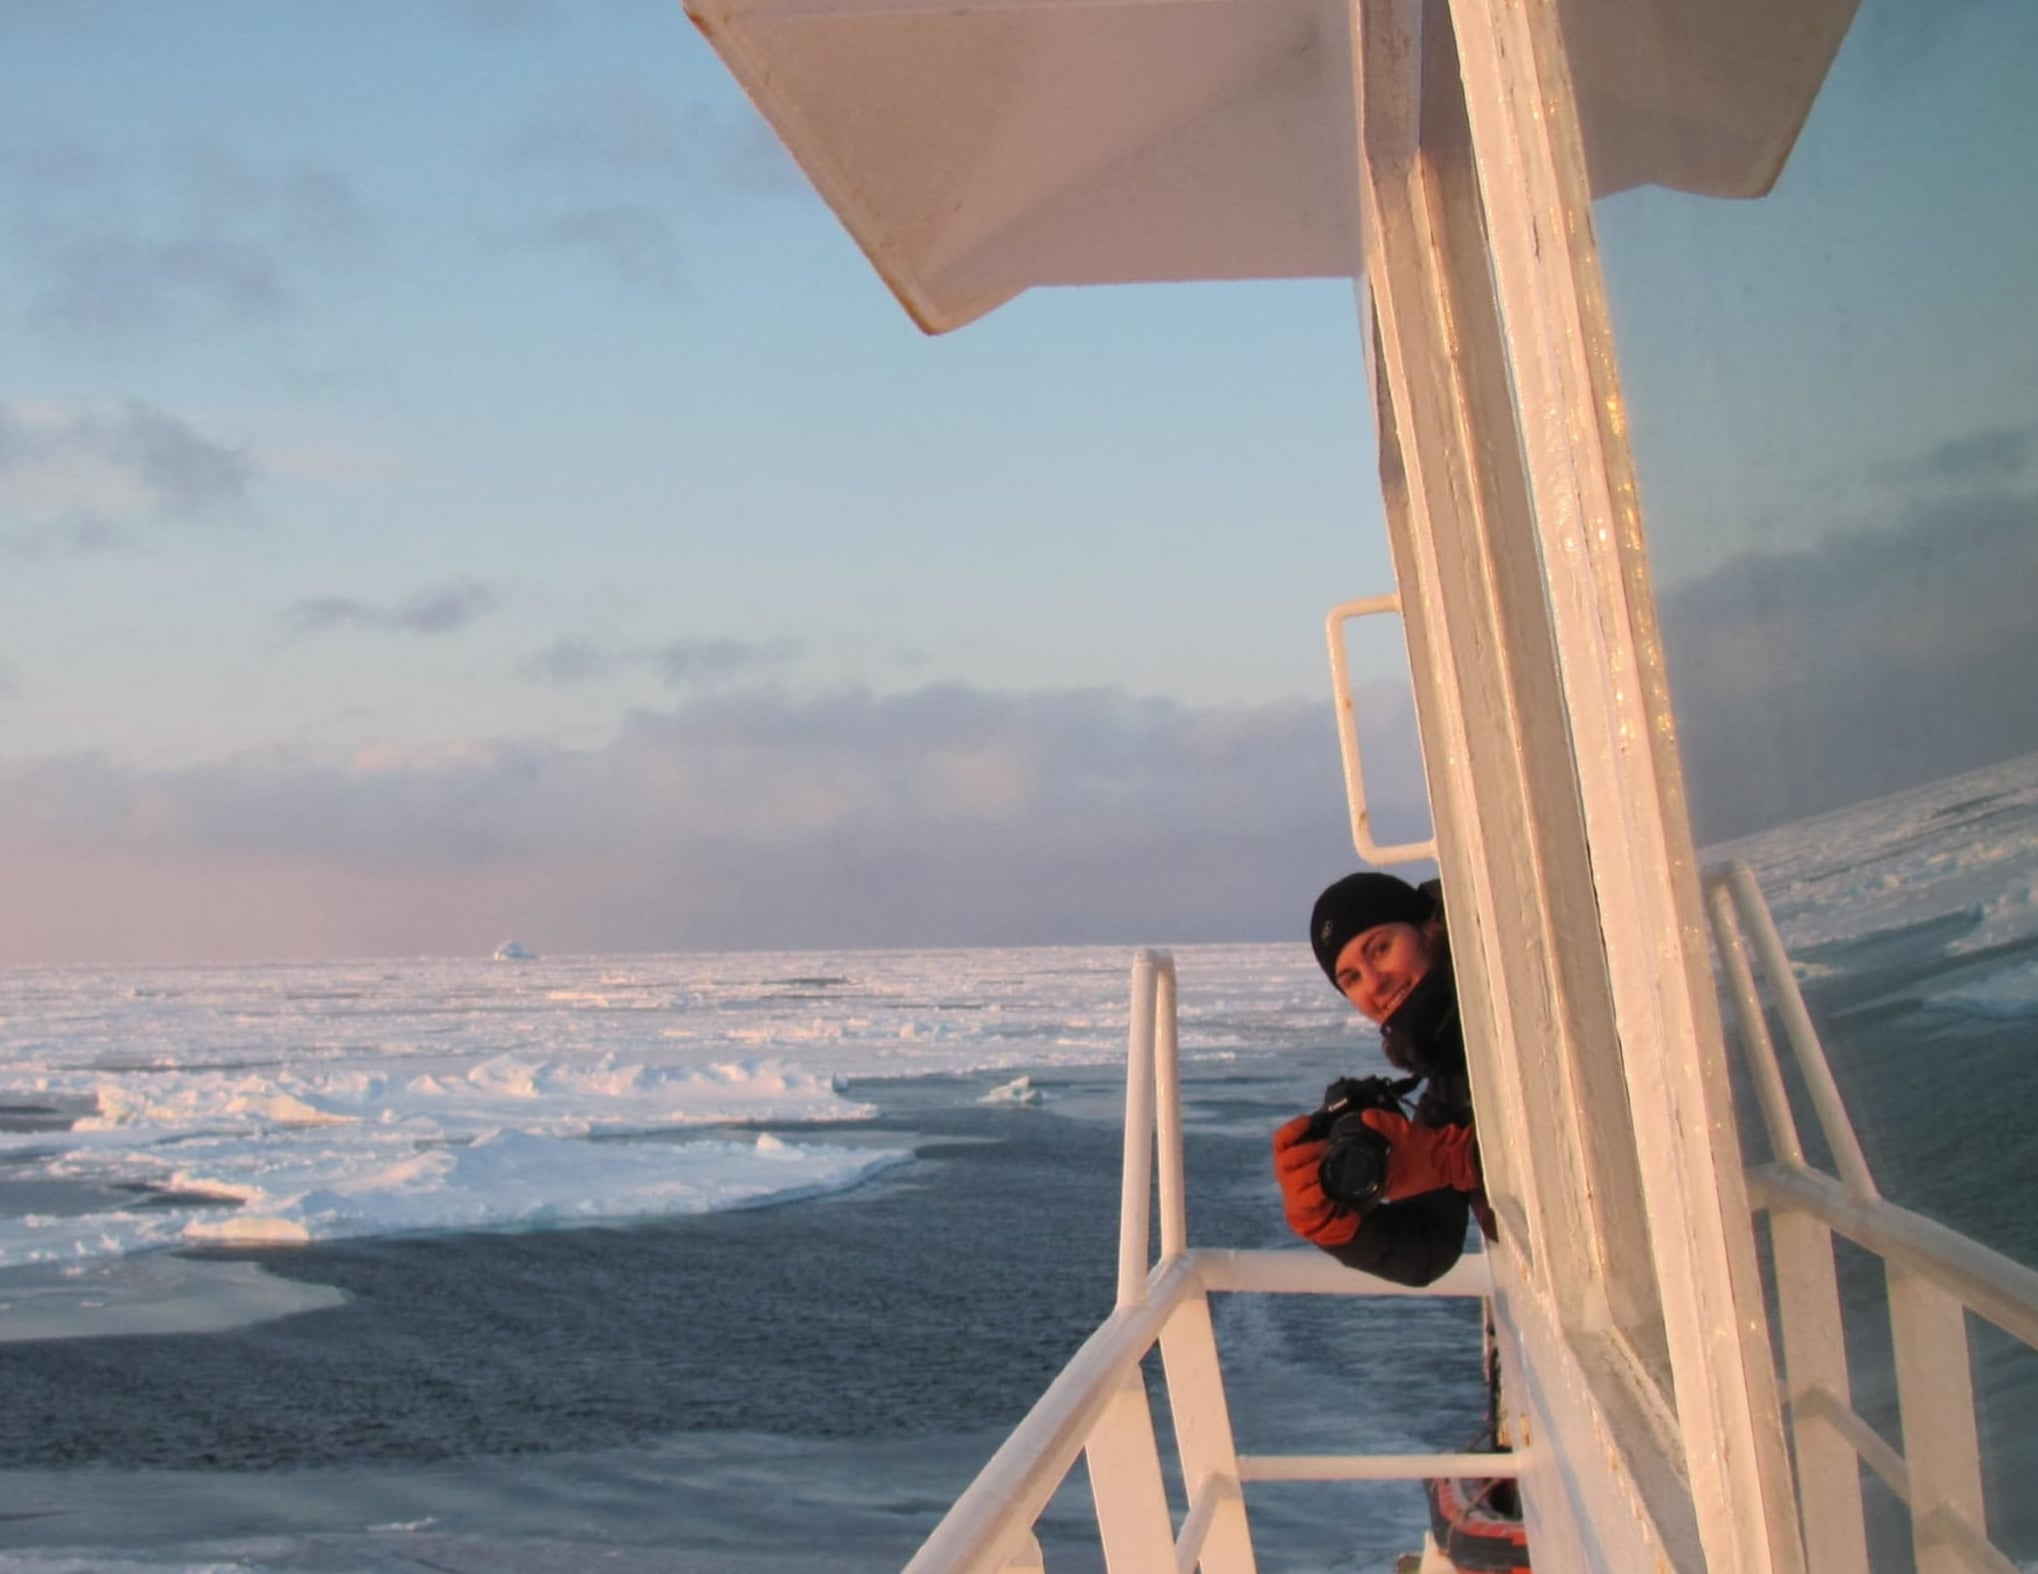 Peaking through the CCGS Amundsen icebreaker window while going through the Northwest Passage for research in 2009.